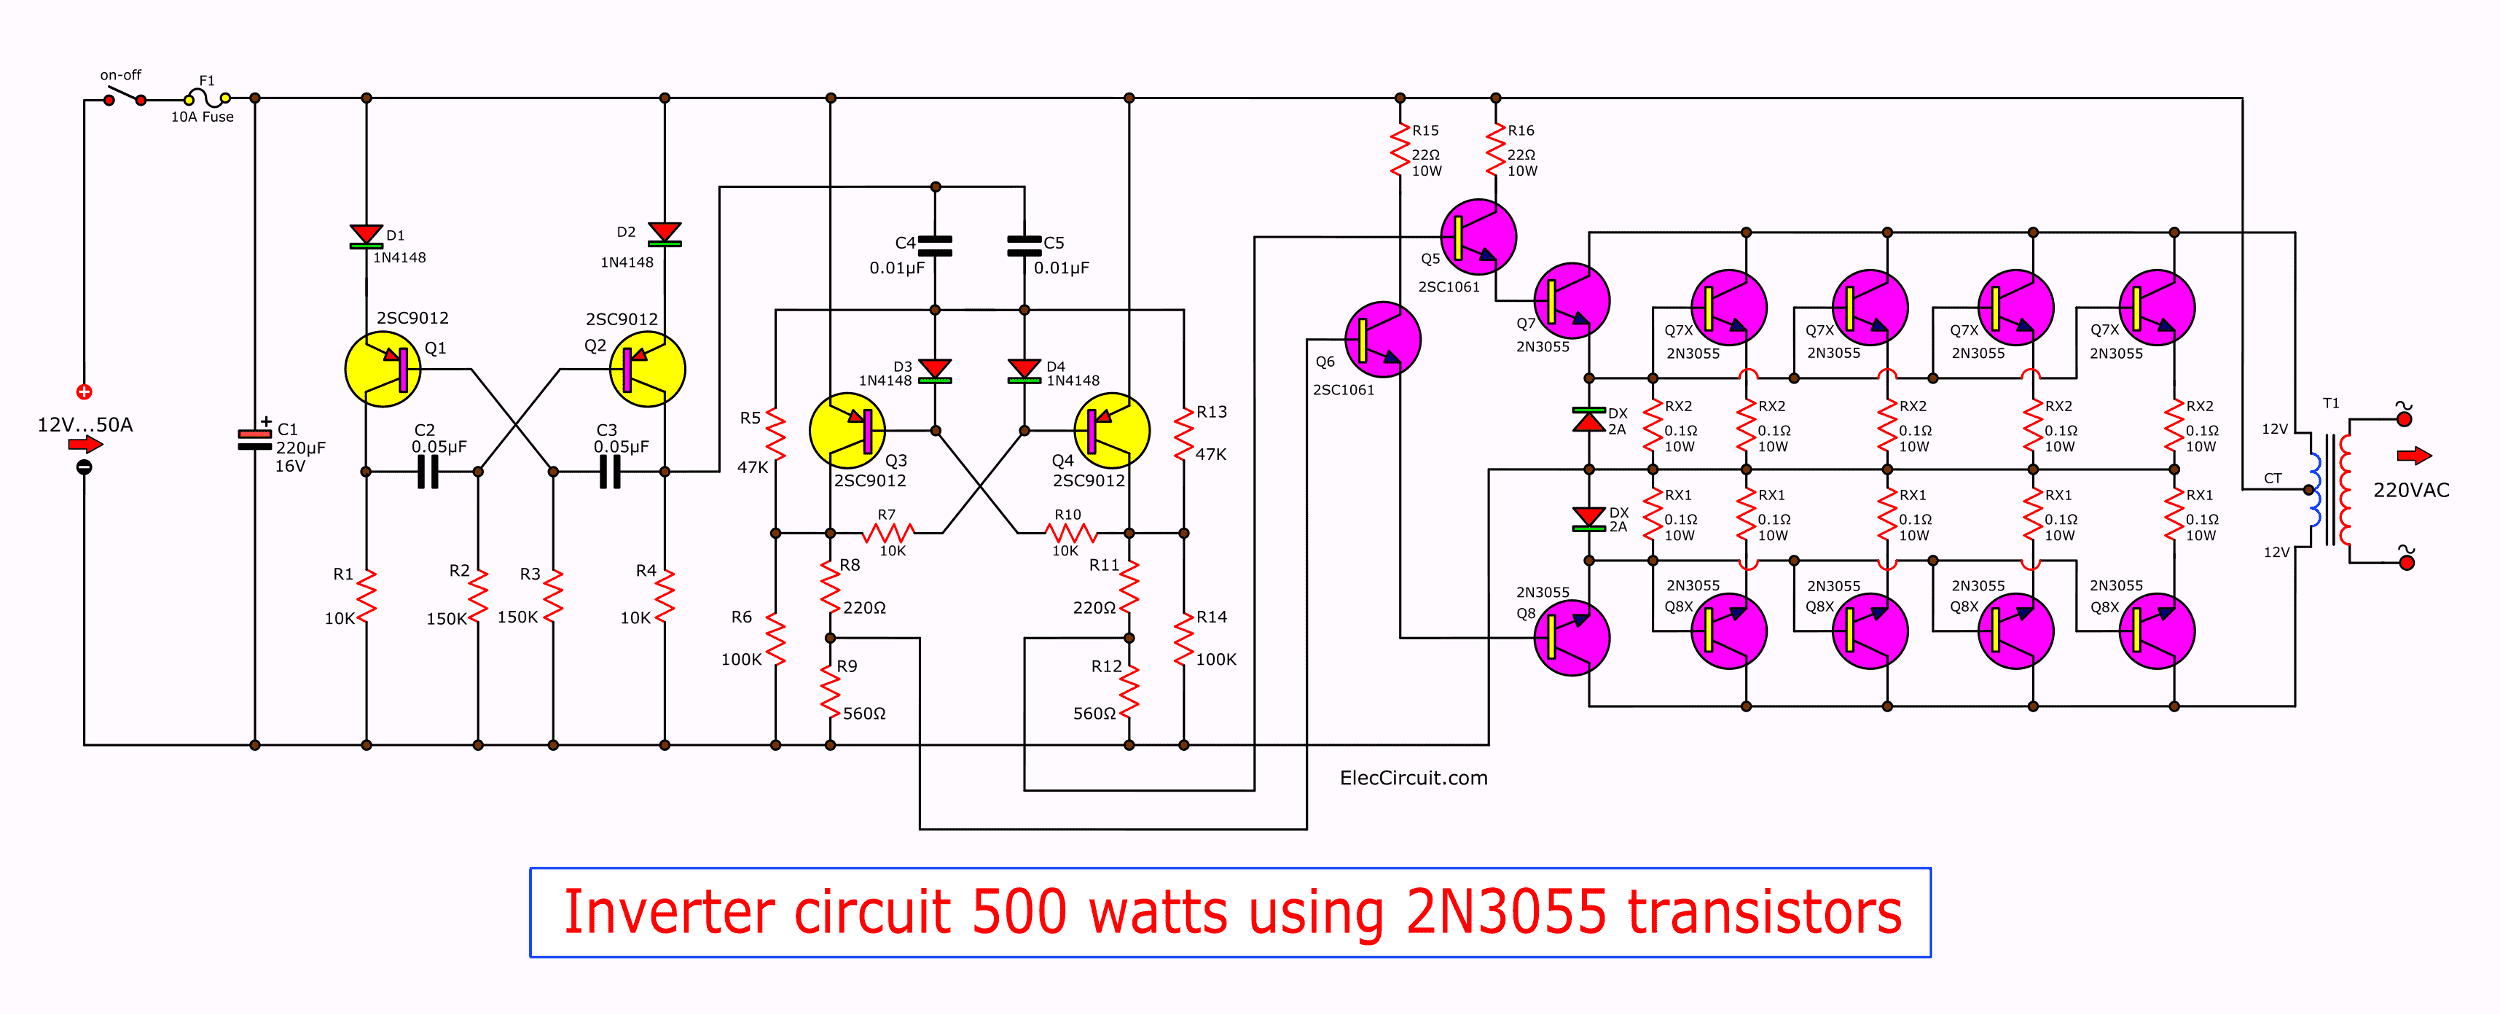 Discussion C3724 ds555392 furthermore Information information id 10 together with Index4 furthermore Wiring A Dusk To Dawn Photocell Sensor furthermore Viewtopic. on wire a 12 volt switch with light